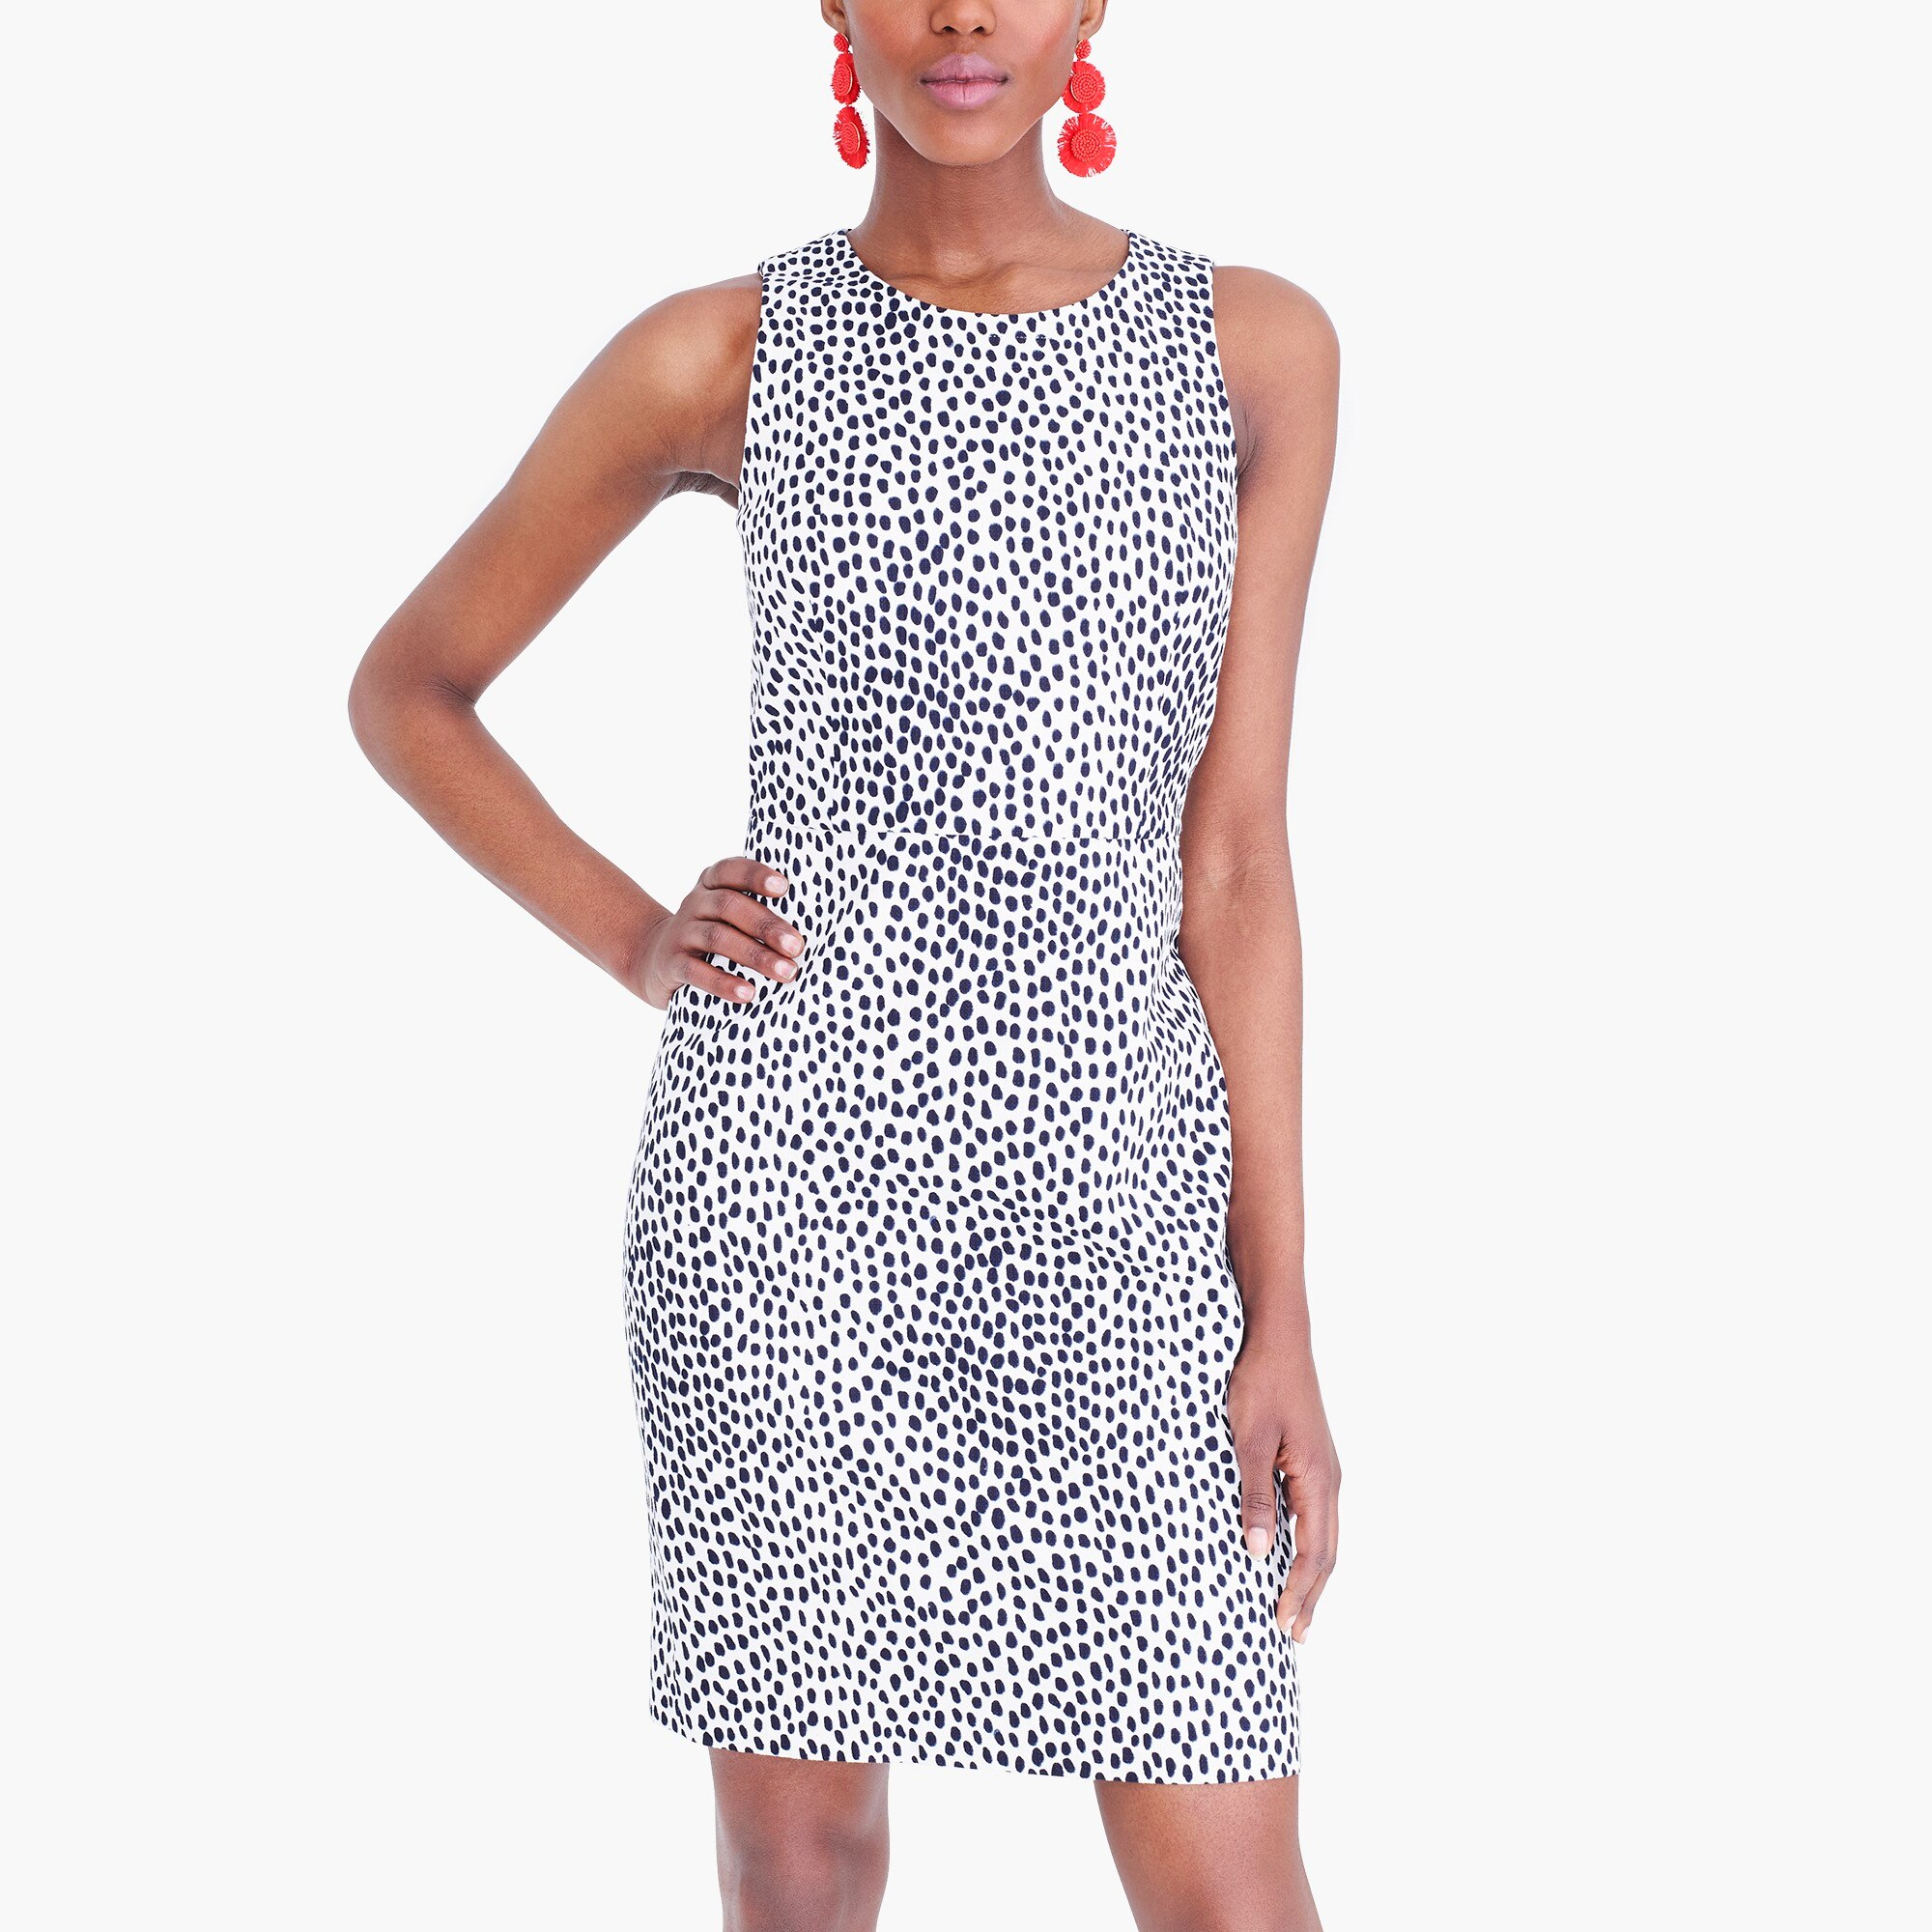 factory womens Basketweave sheath dress in animal print